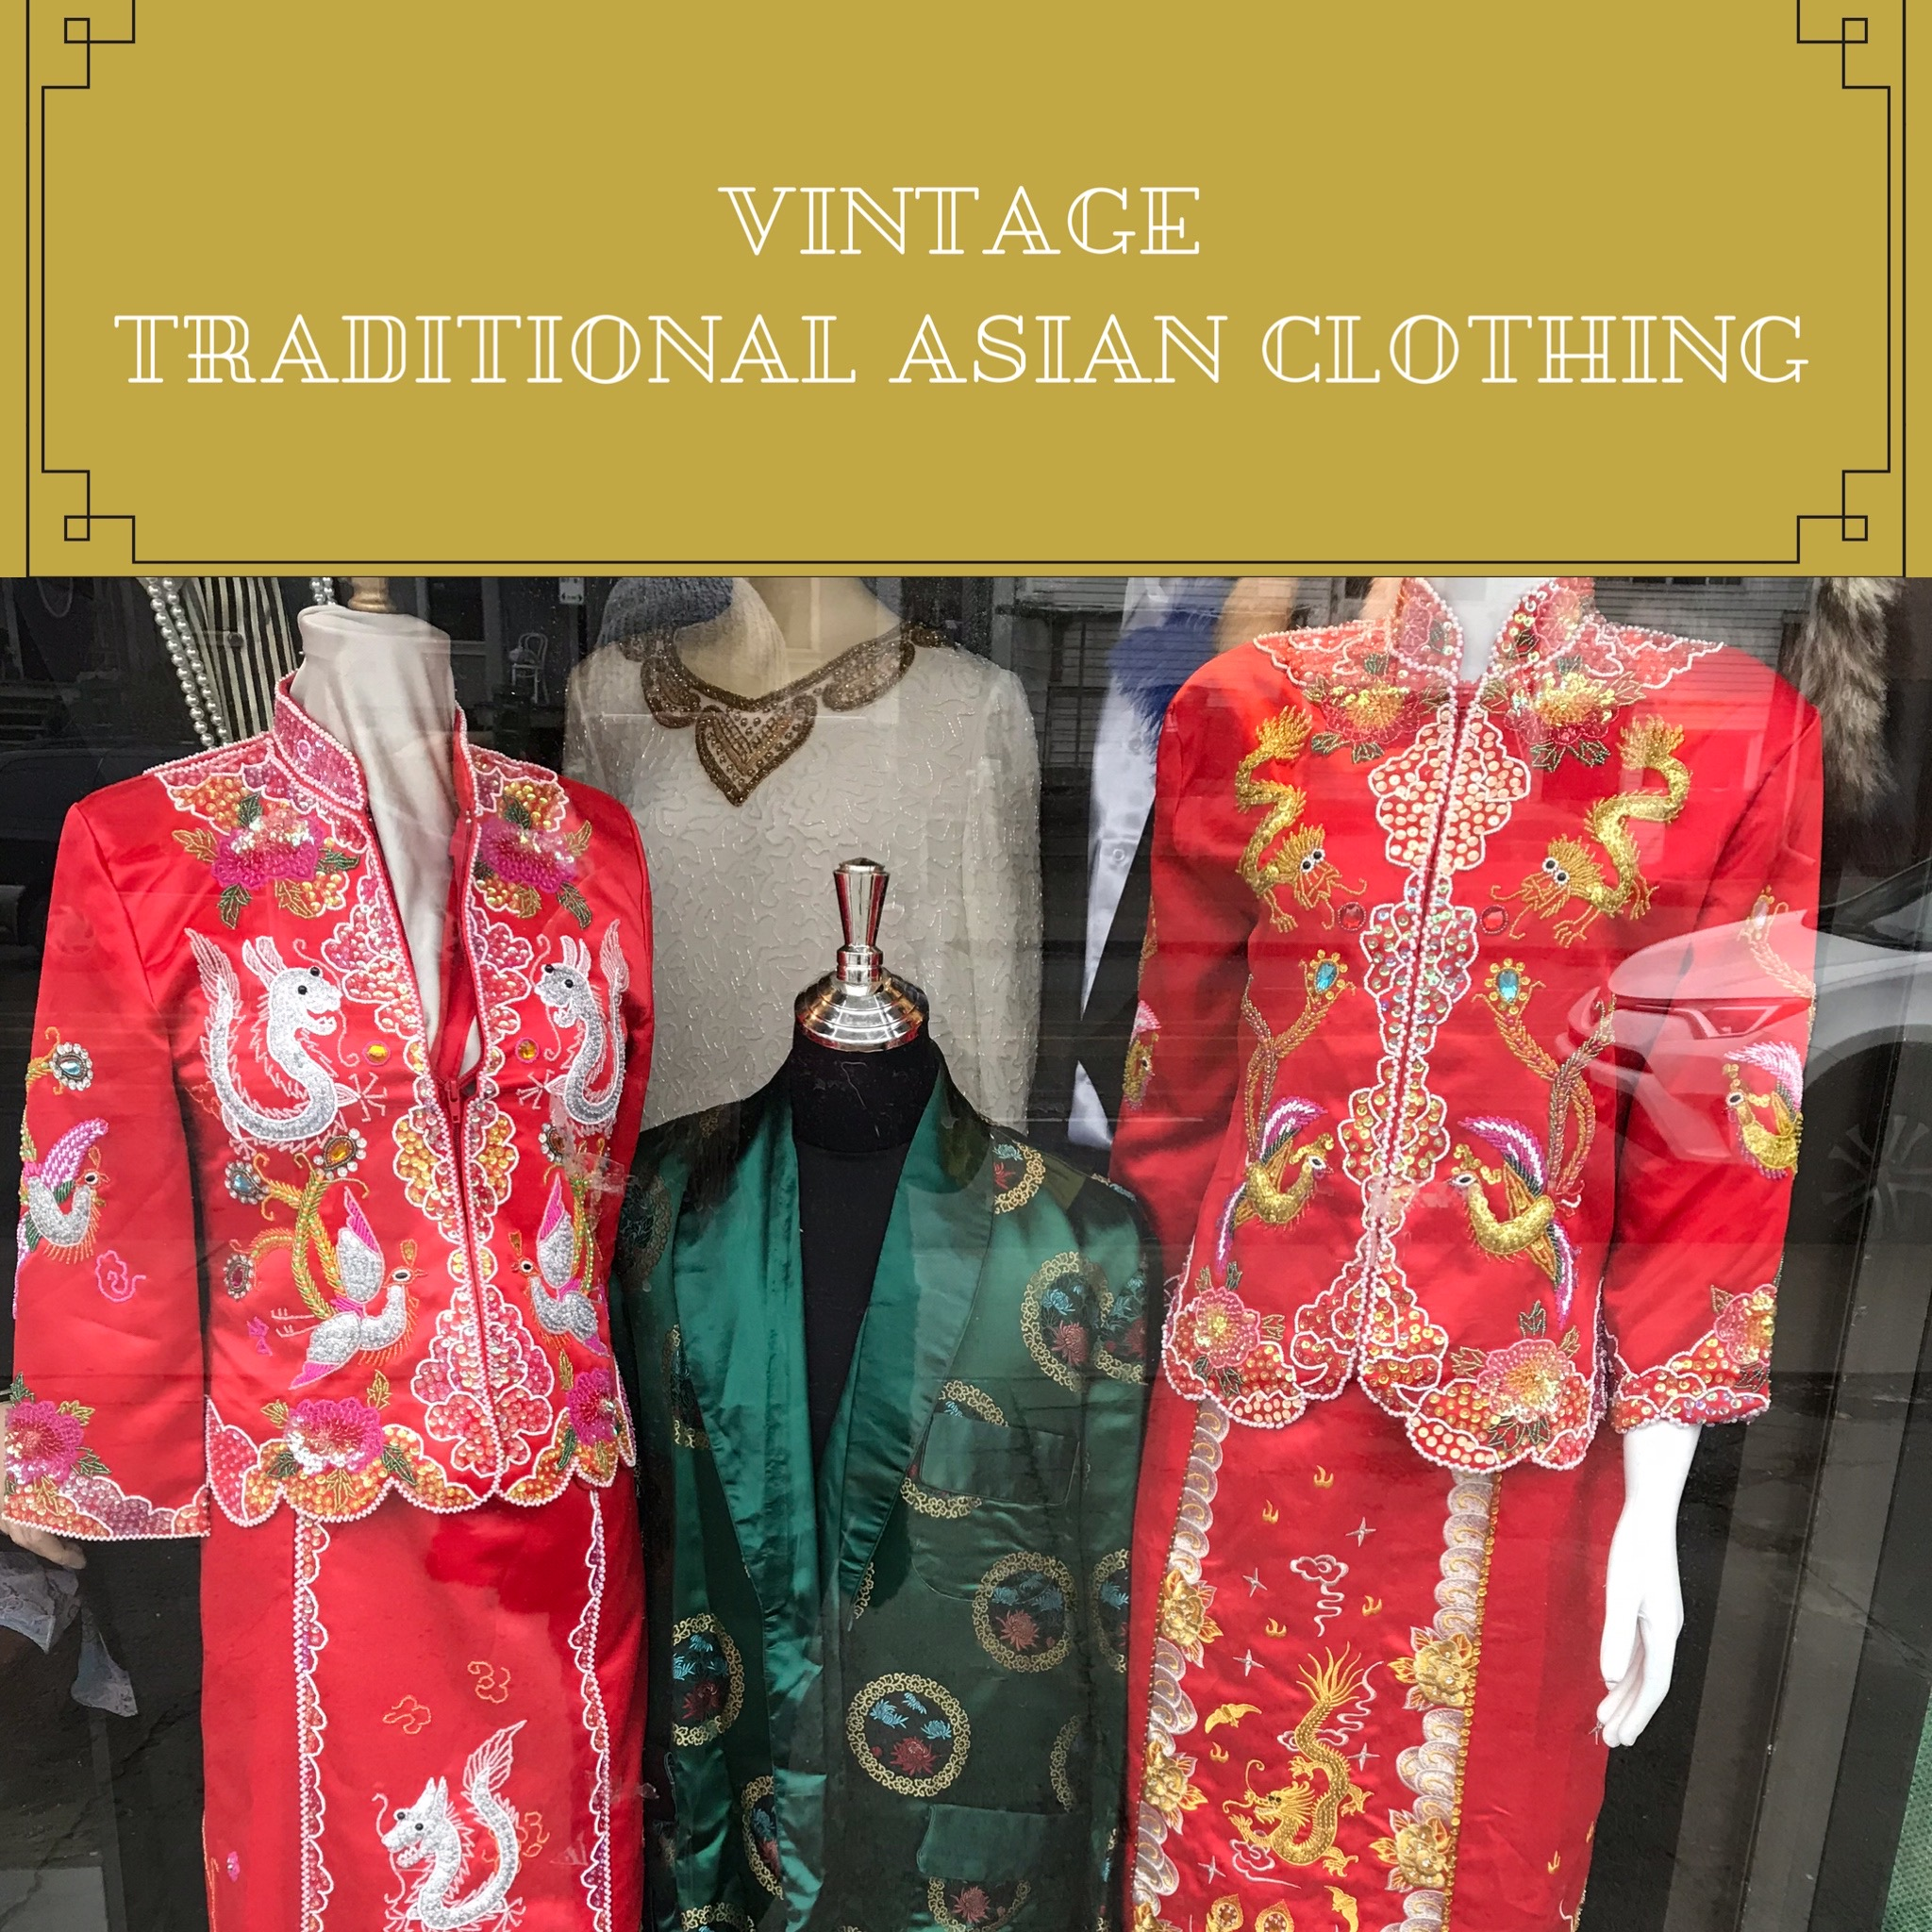 Vintage Traditional Asian Clothing